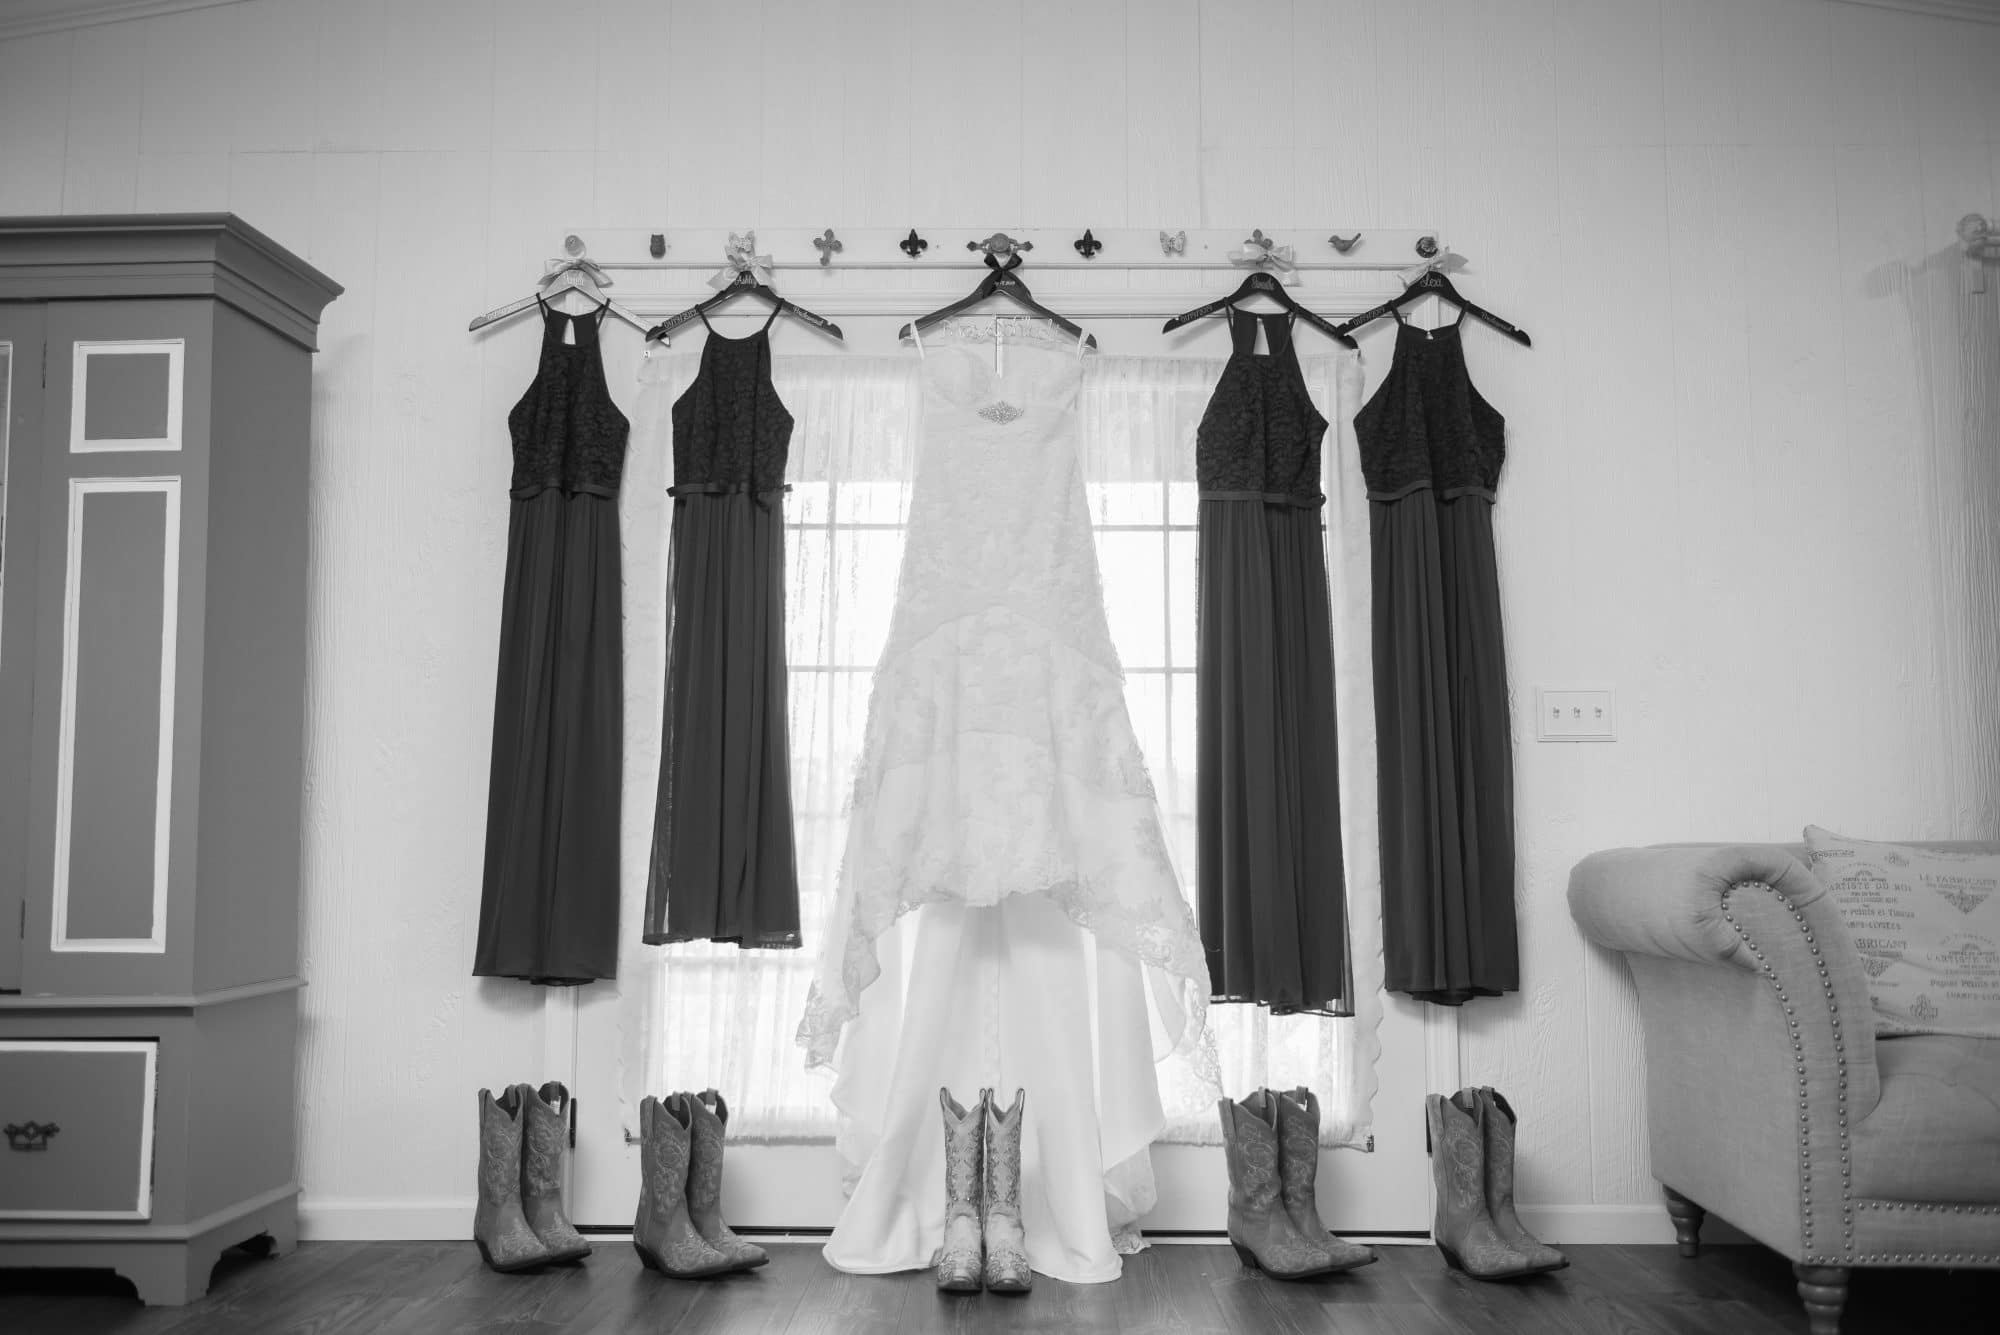 bride and bridesmaids' dresses hung in front of window with cowboy boots underneath